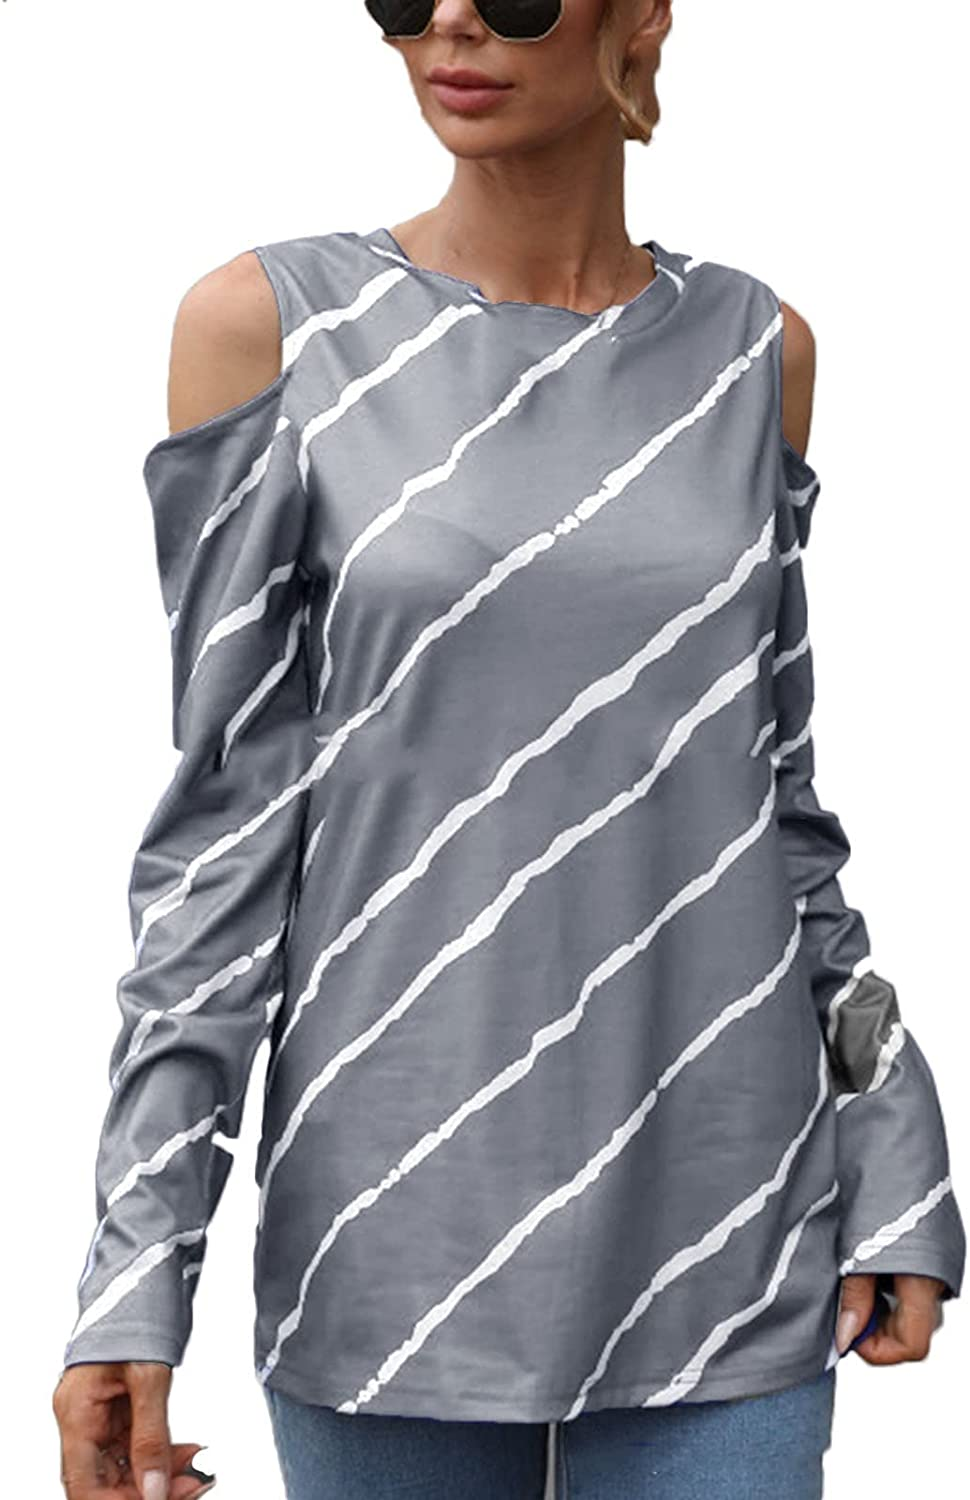 Off The Shoulder Tops for Women Casual shipfree Long Genuine Free Shipping Ptint Sexy Stripes S